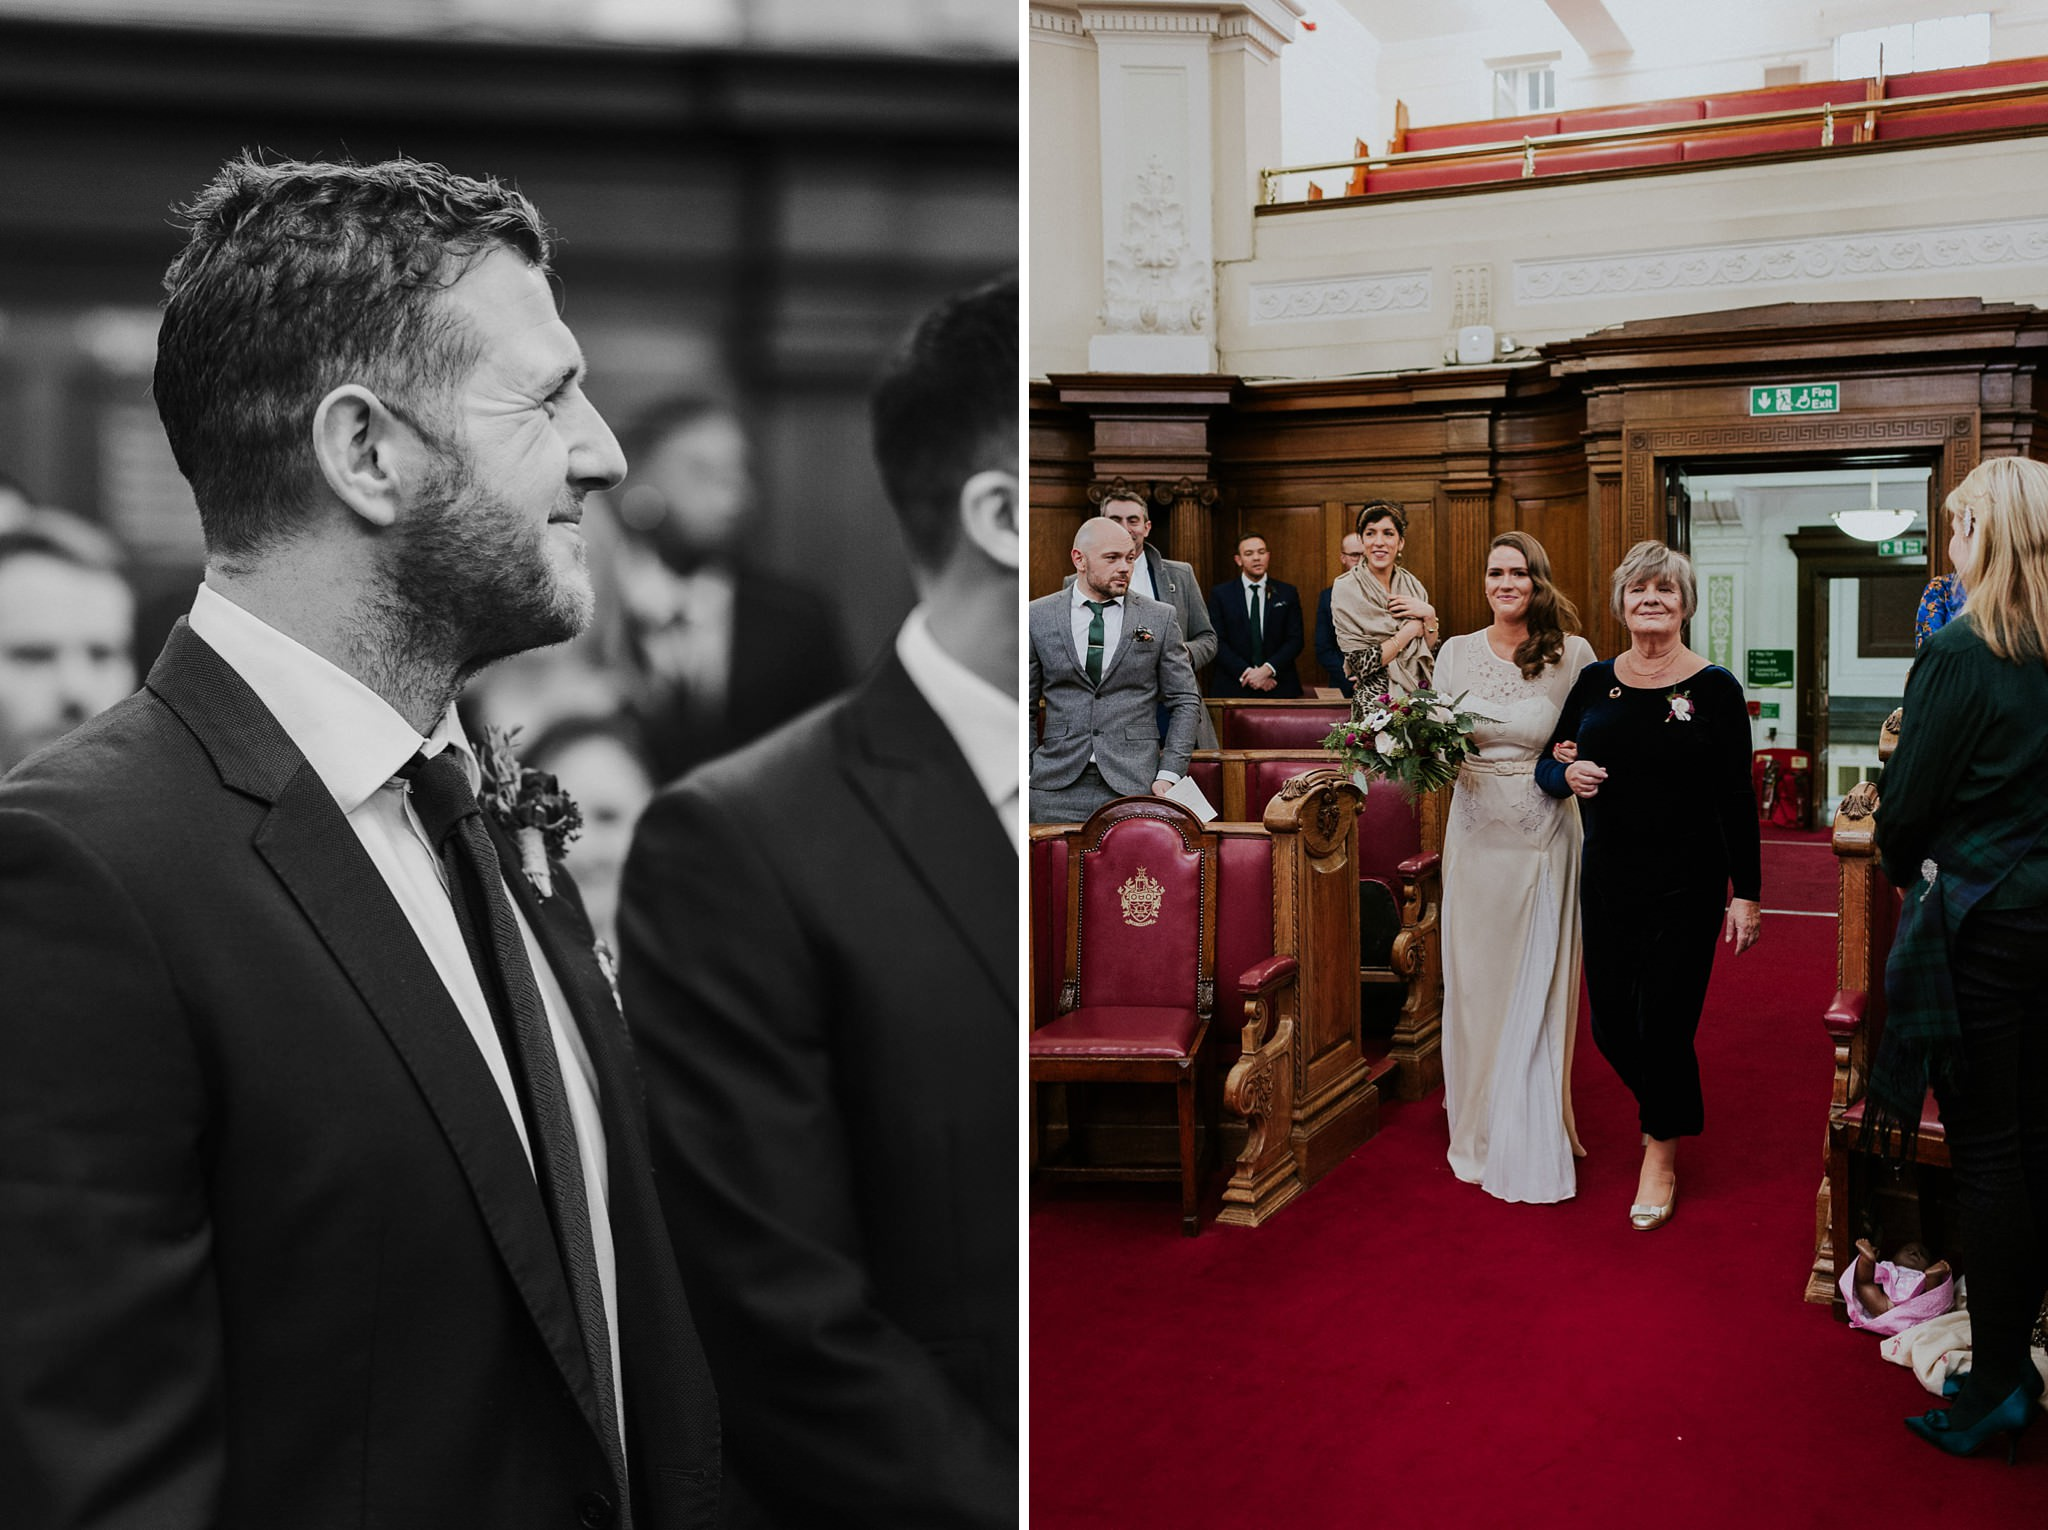 Bride arrives for the ceremony at Islington Town Hall